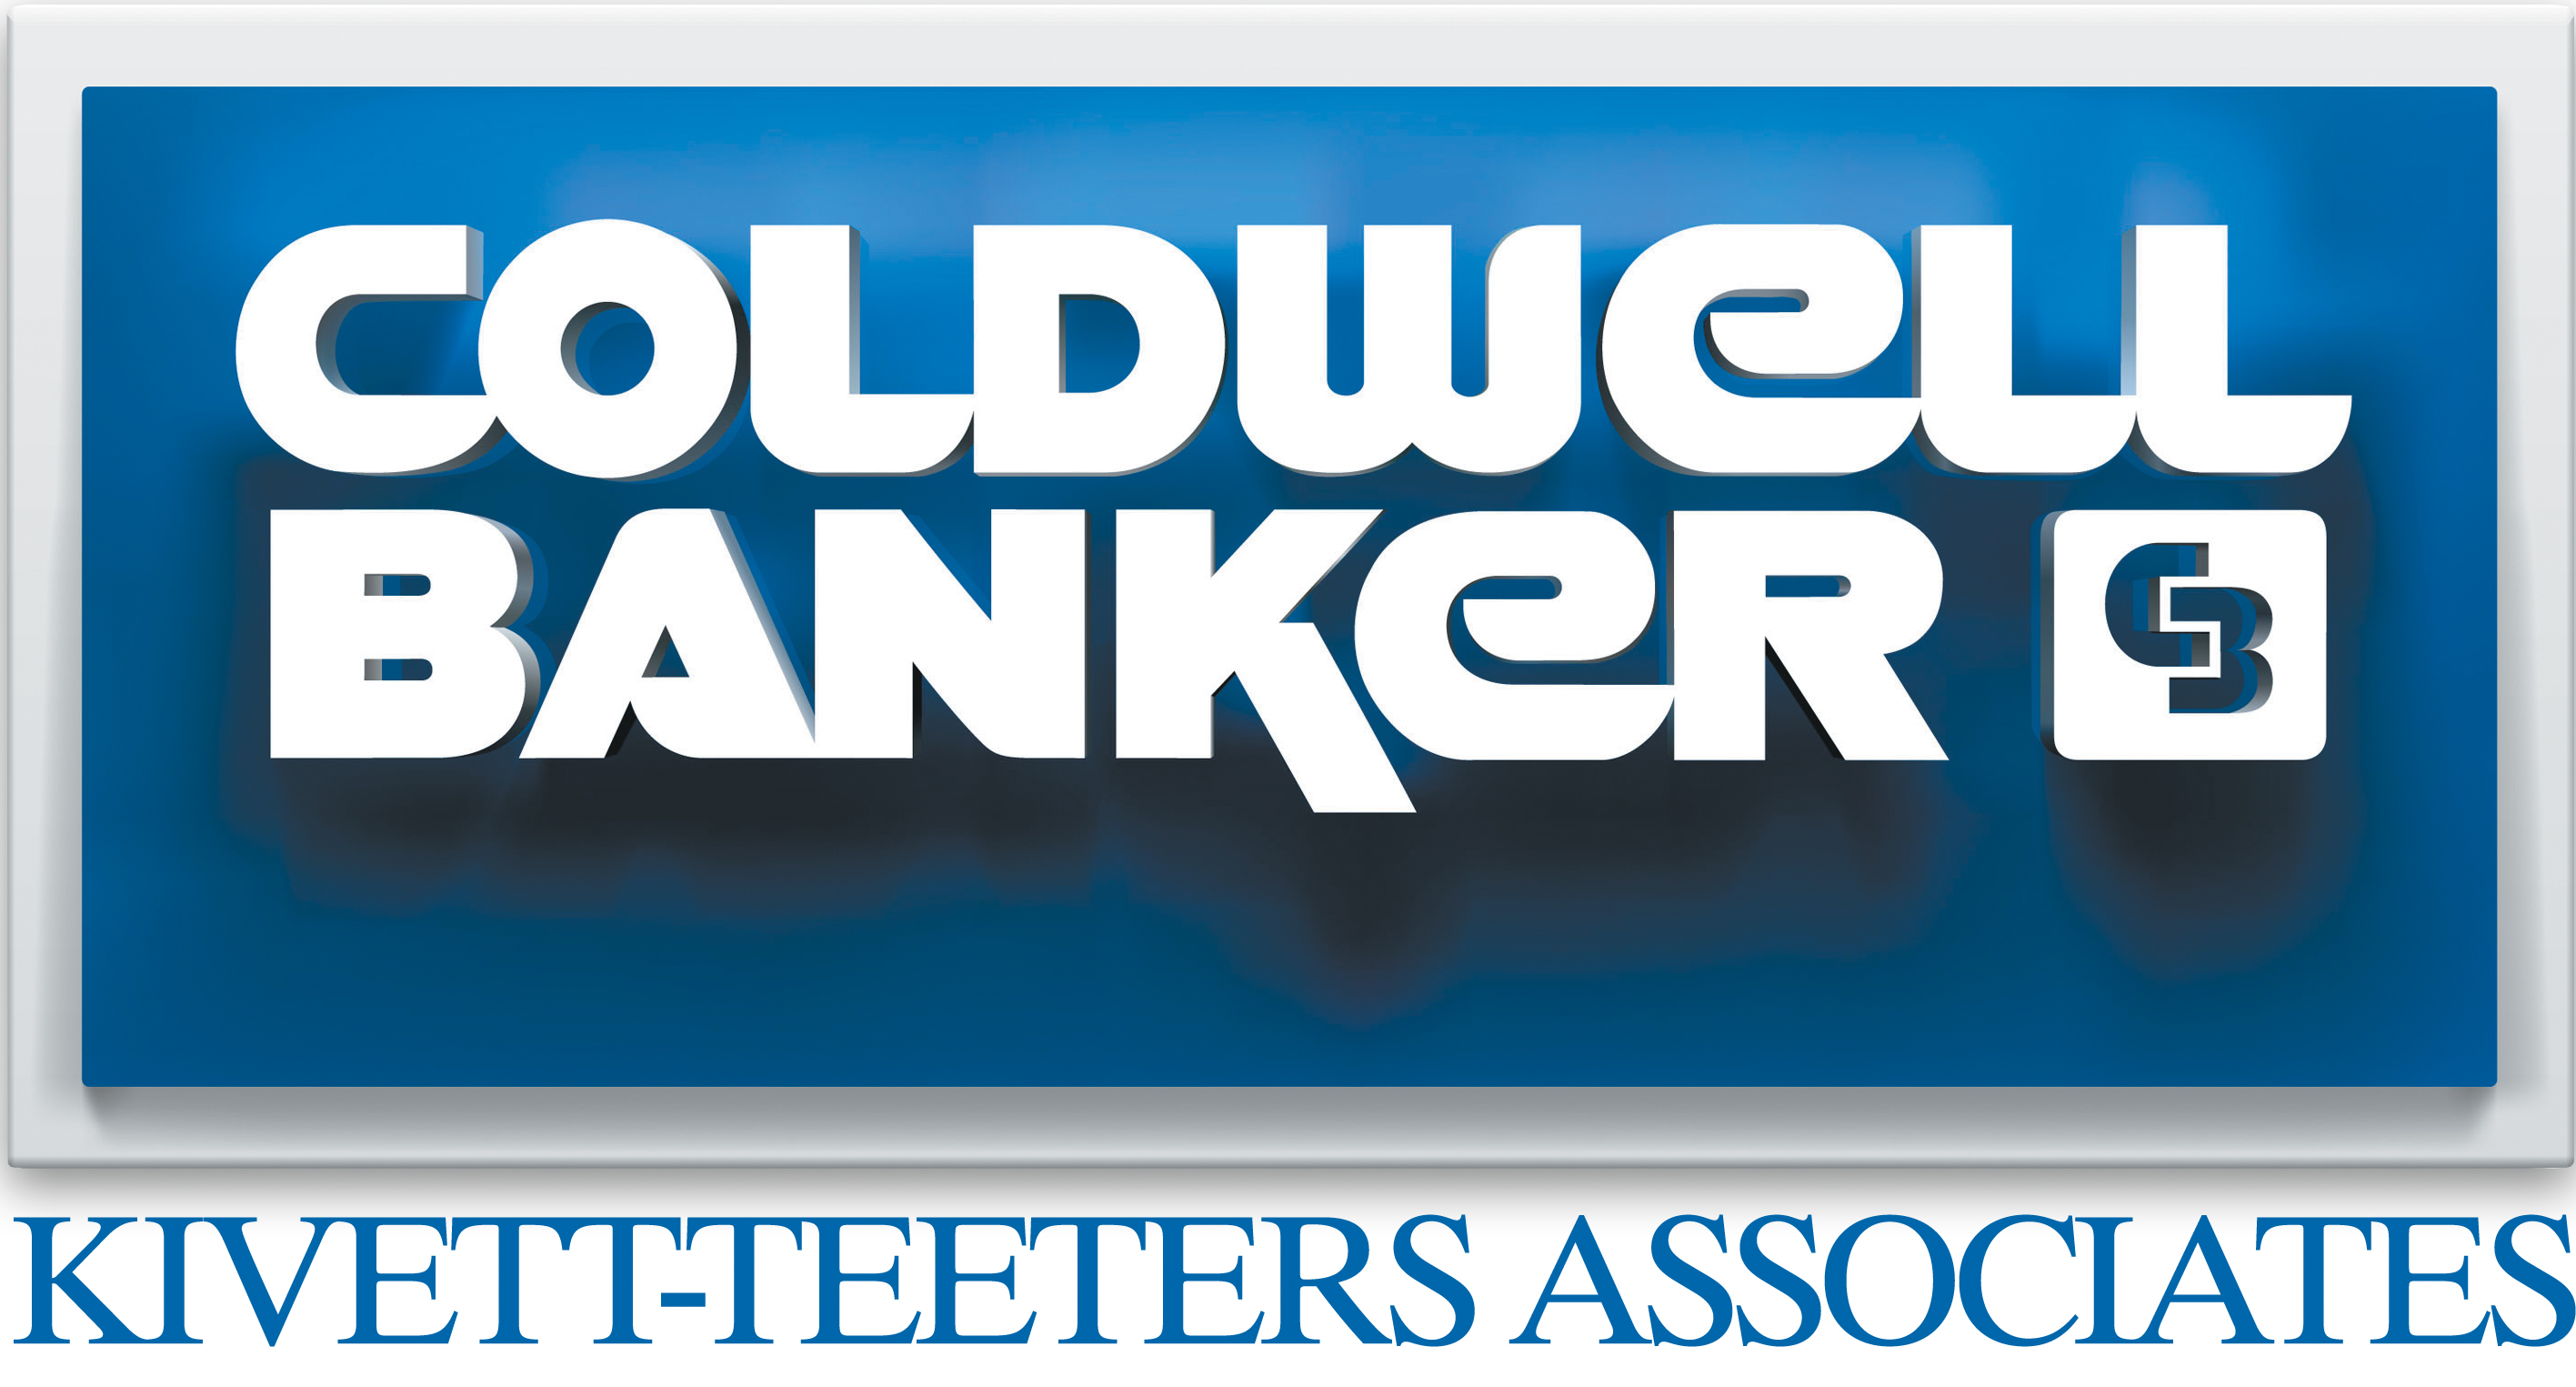 Coldwell Banker Kivett -Teeters Beaumont Agent